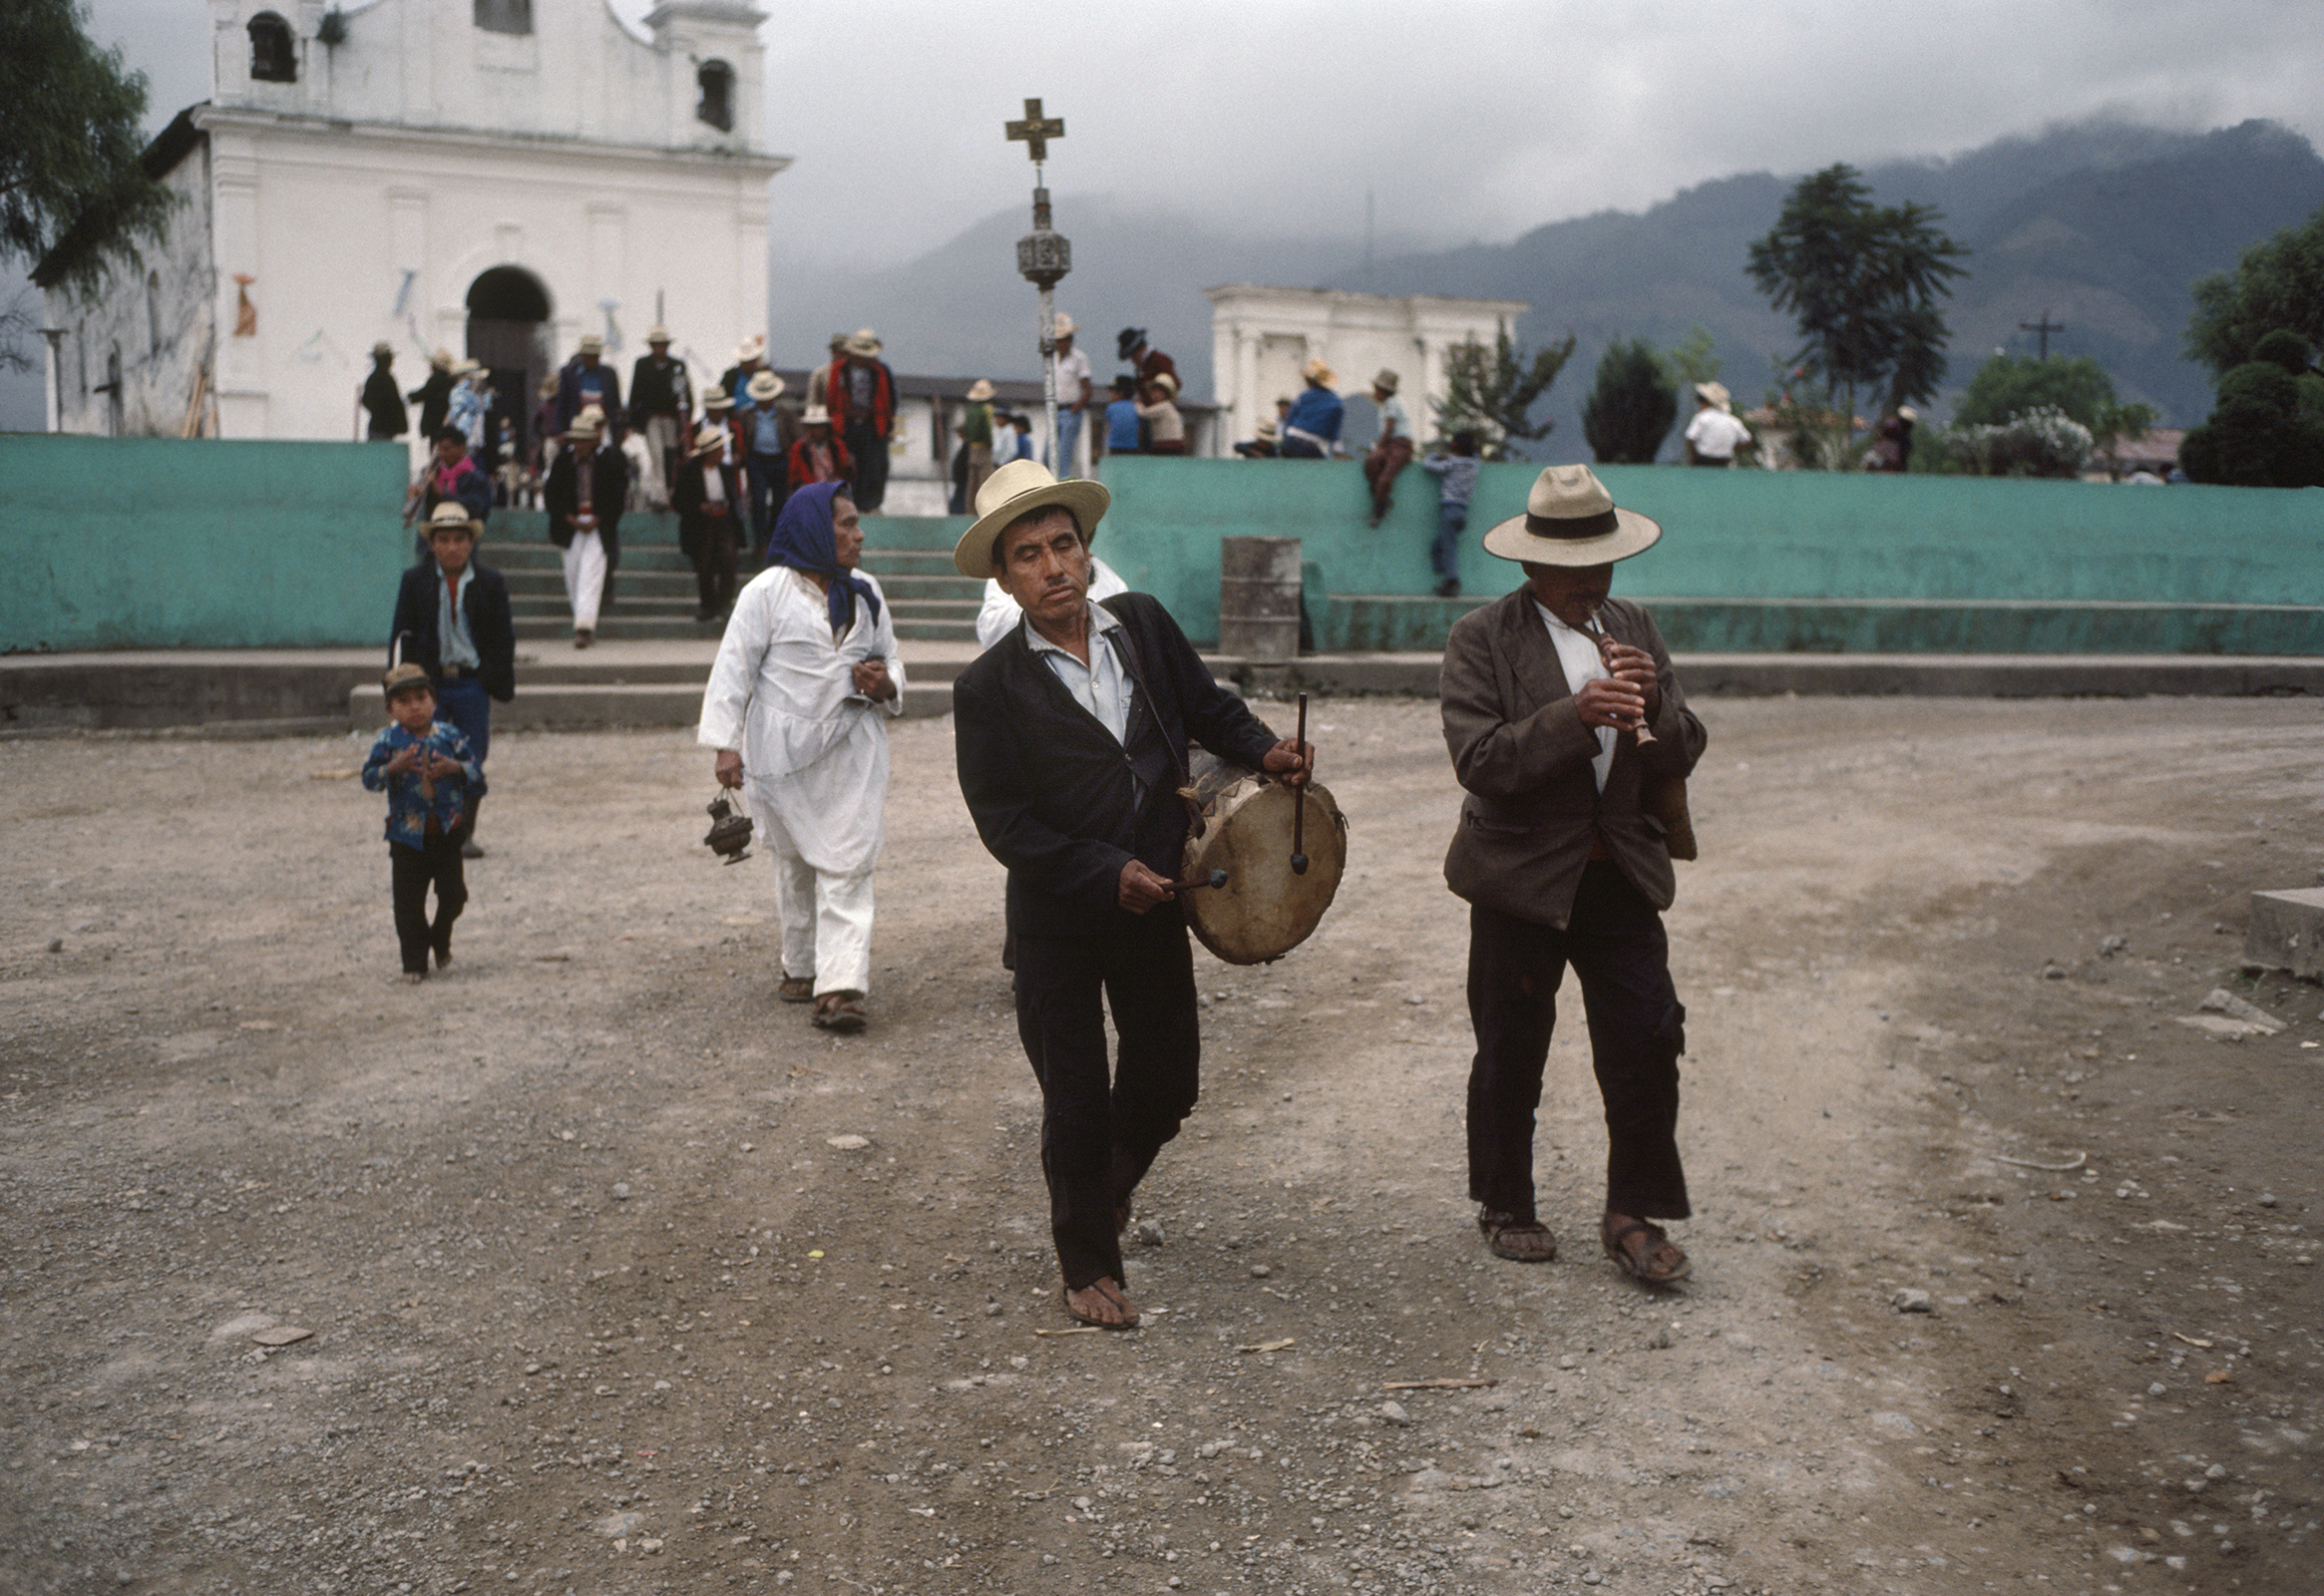 Ixil Maya men leave the central plaza following a Roman Catholic Church service in Nebaj, Guatemala on January 1, 1984. Religion played a fundamental role in the civil war for both the guerrilla insurgency, who sympathized with the socially progressive Catholic movement of liberation theology, and the Guatemalan state, who used Fundamental Protestantism, and specifically the evangelical movement, as a means to stifle opposition to the military dictatorship and subvert the expansion of liberties and individual responsibility promoted through liberation theology.